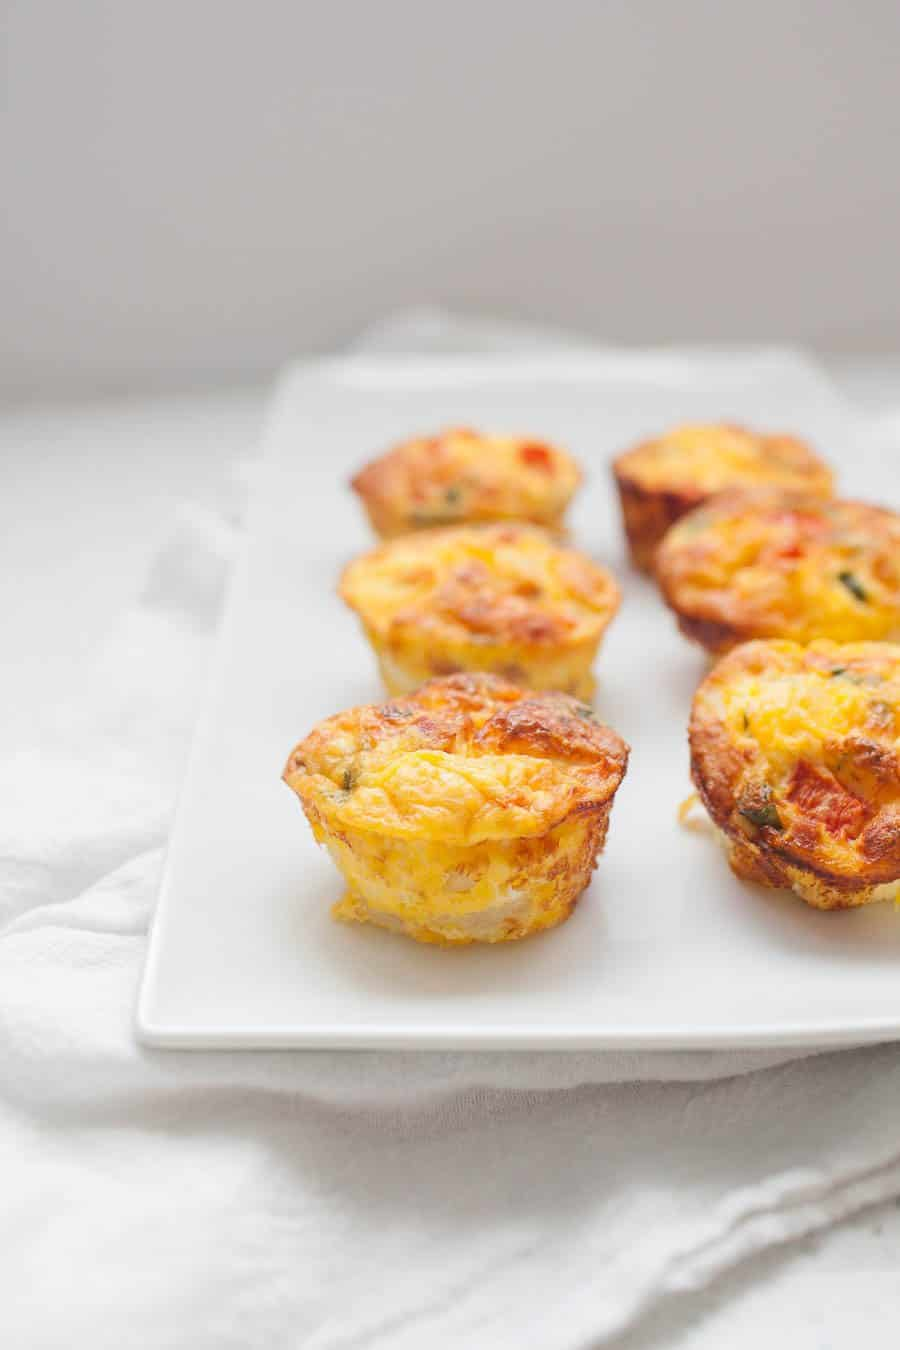 Simplify your breakfast routine with Make Ahead Breakfast Frittata Muffins. With this delicious recipe, you'll have breakfast prepped for the week. These frittata muffins are packed with flavor and you can even customize them to use up the vegetables you have on hand.